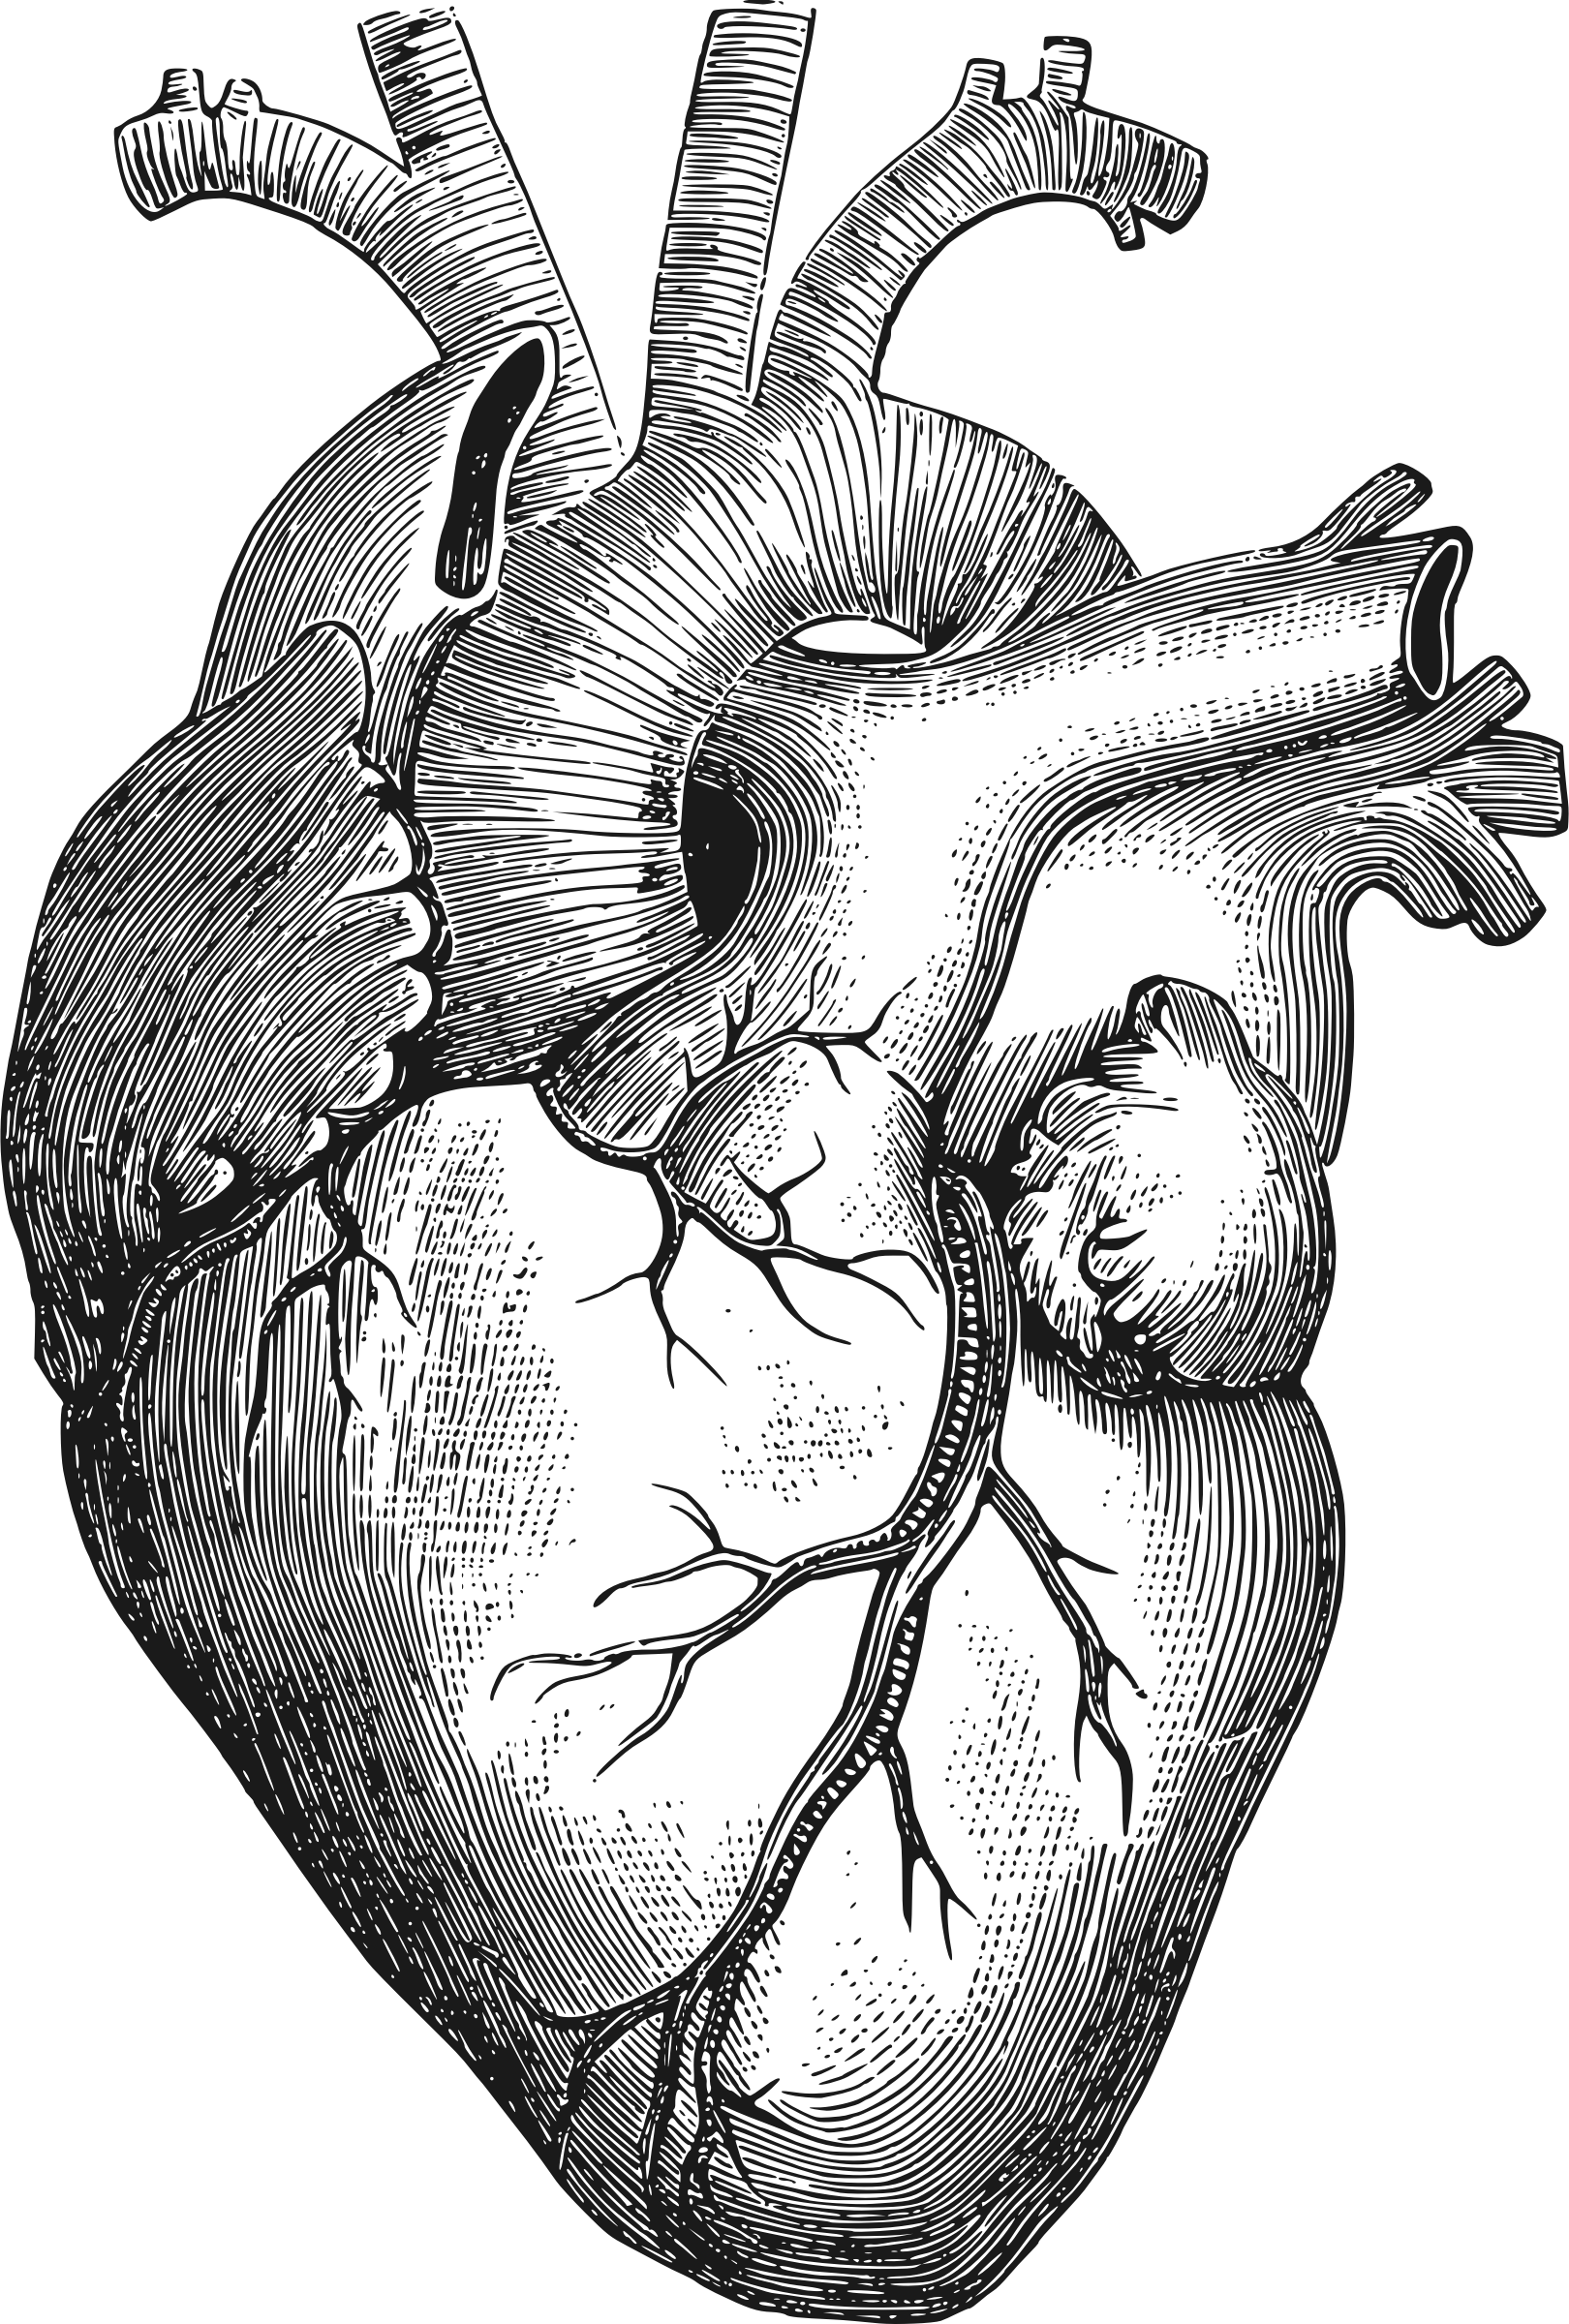 Human heart drawing png. Collection of high